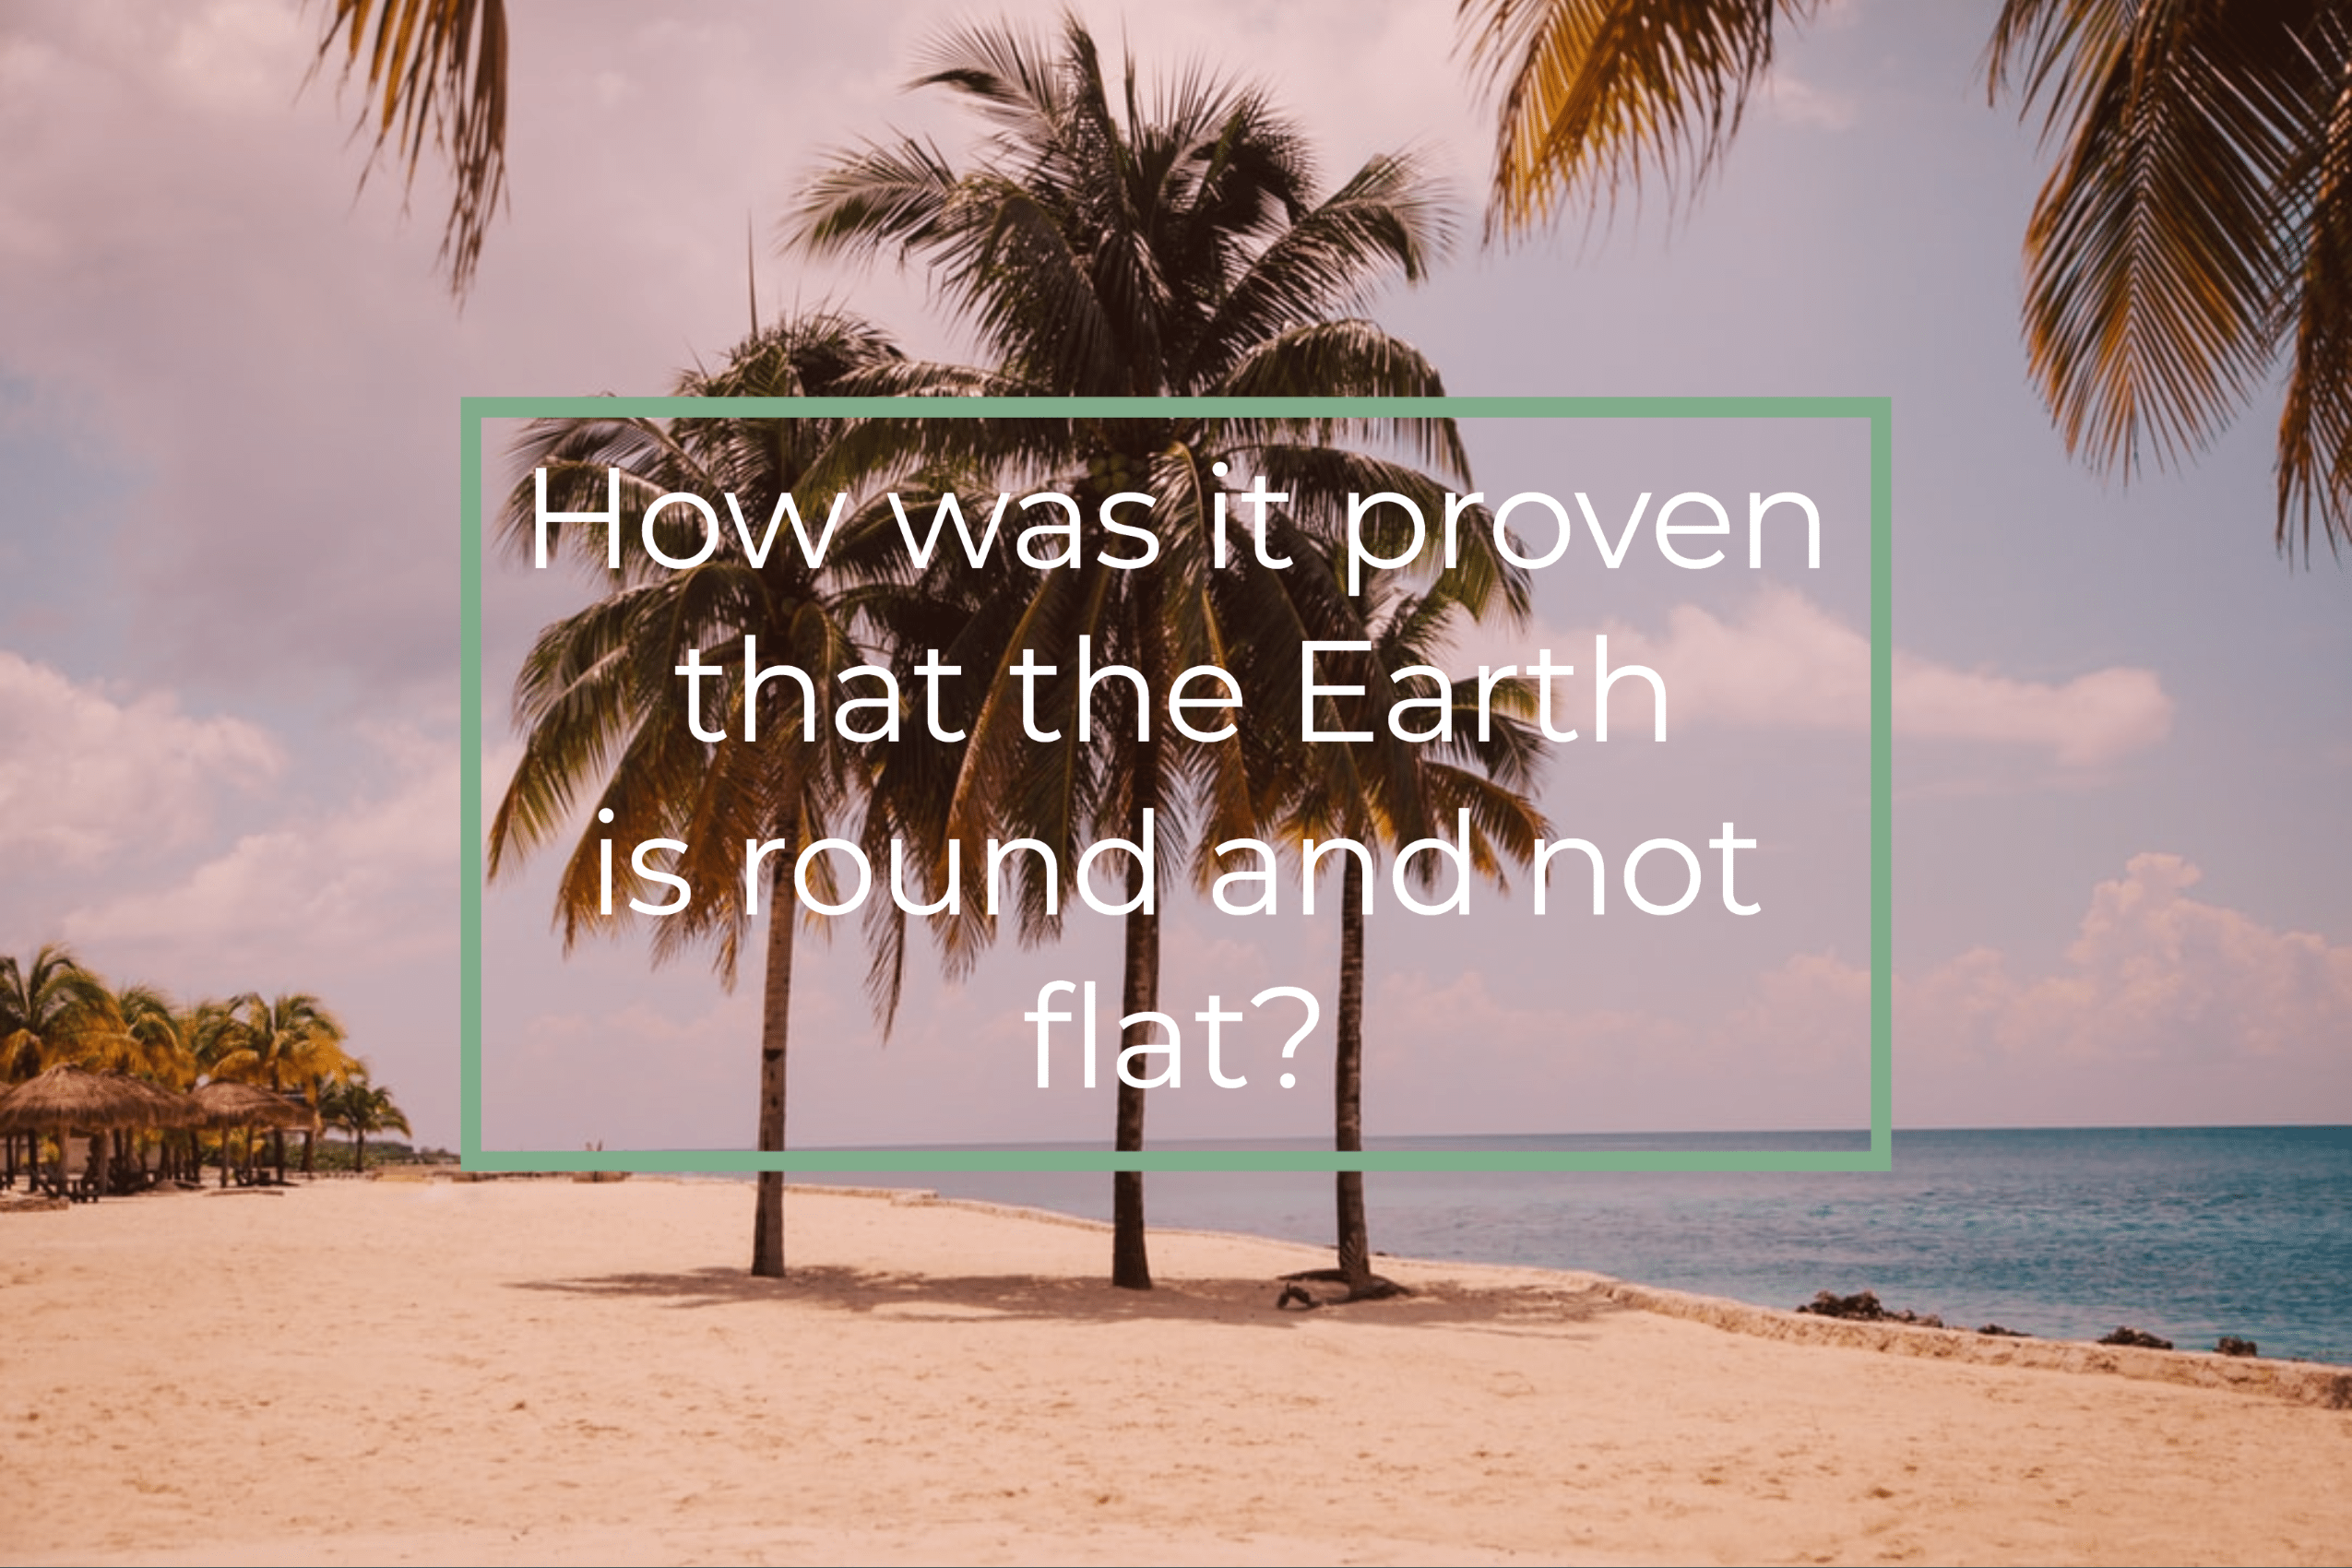 How was it proven that the Earth is round and not flat